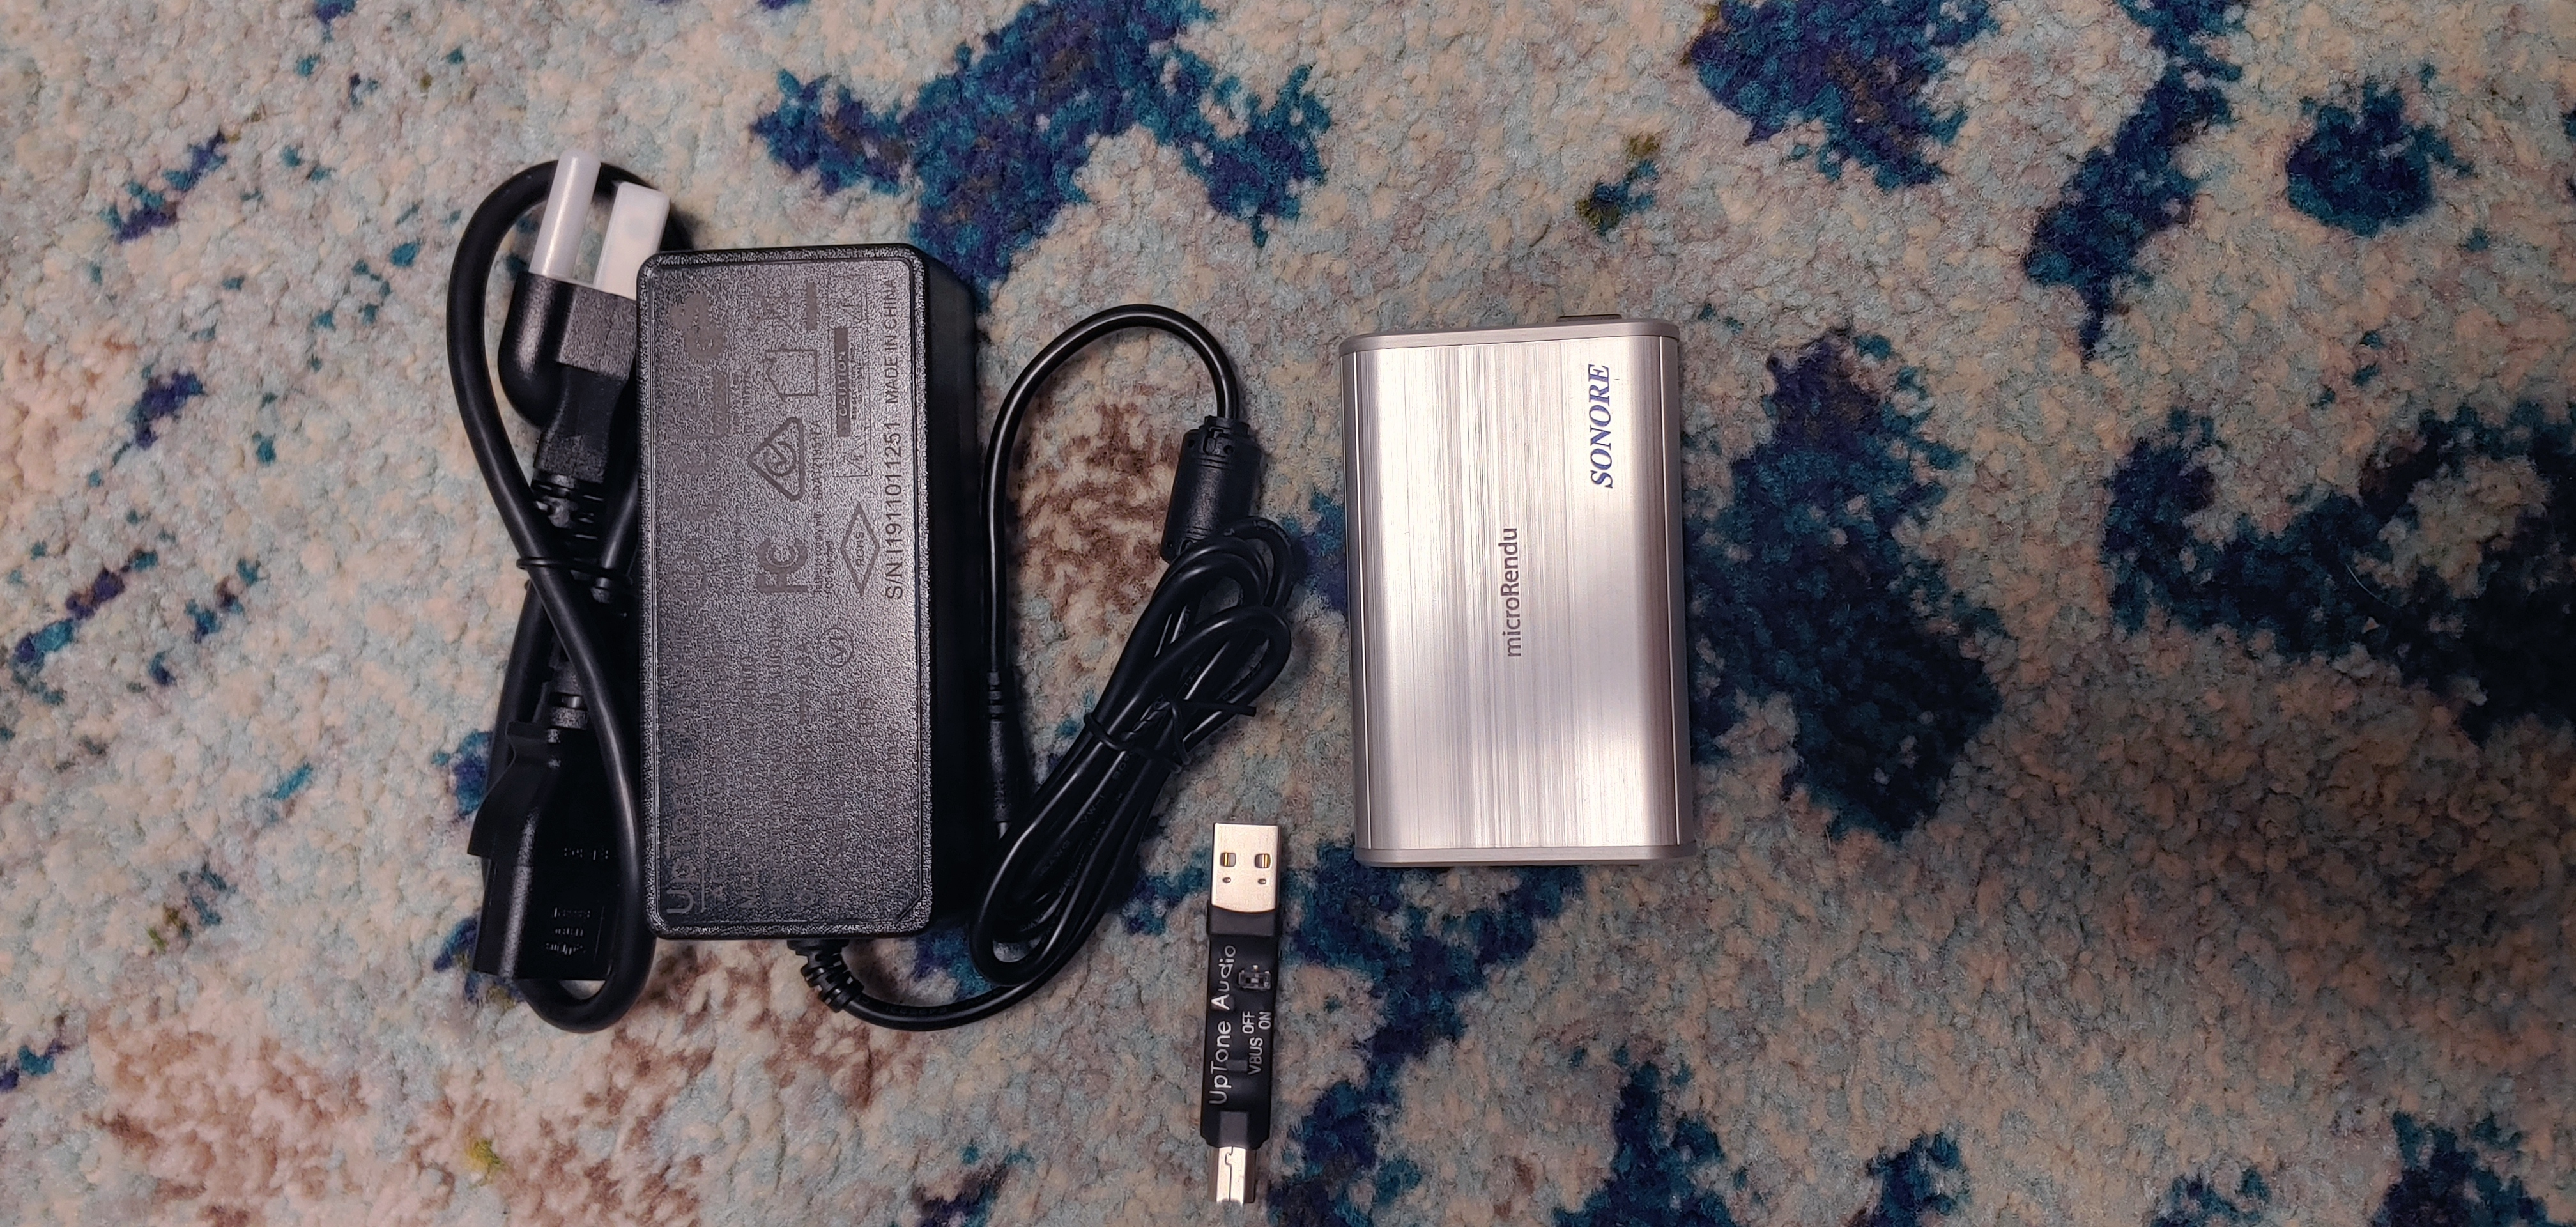 Sonore Microrendu with Uptone Power Supply and and USPCB A>B Adapter